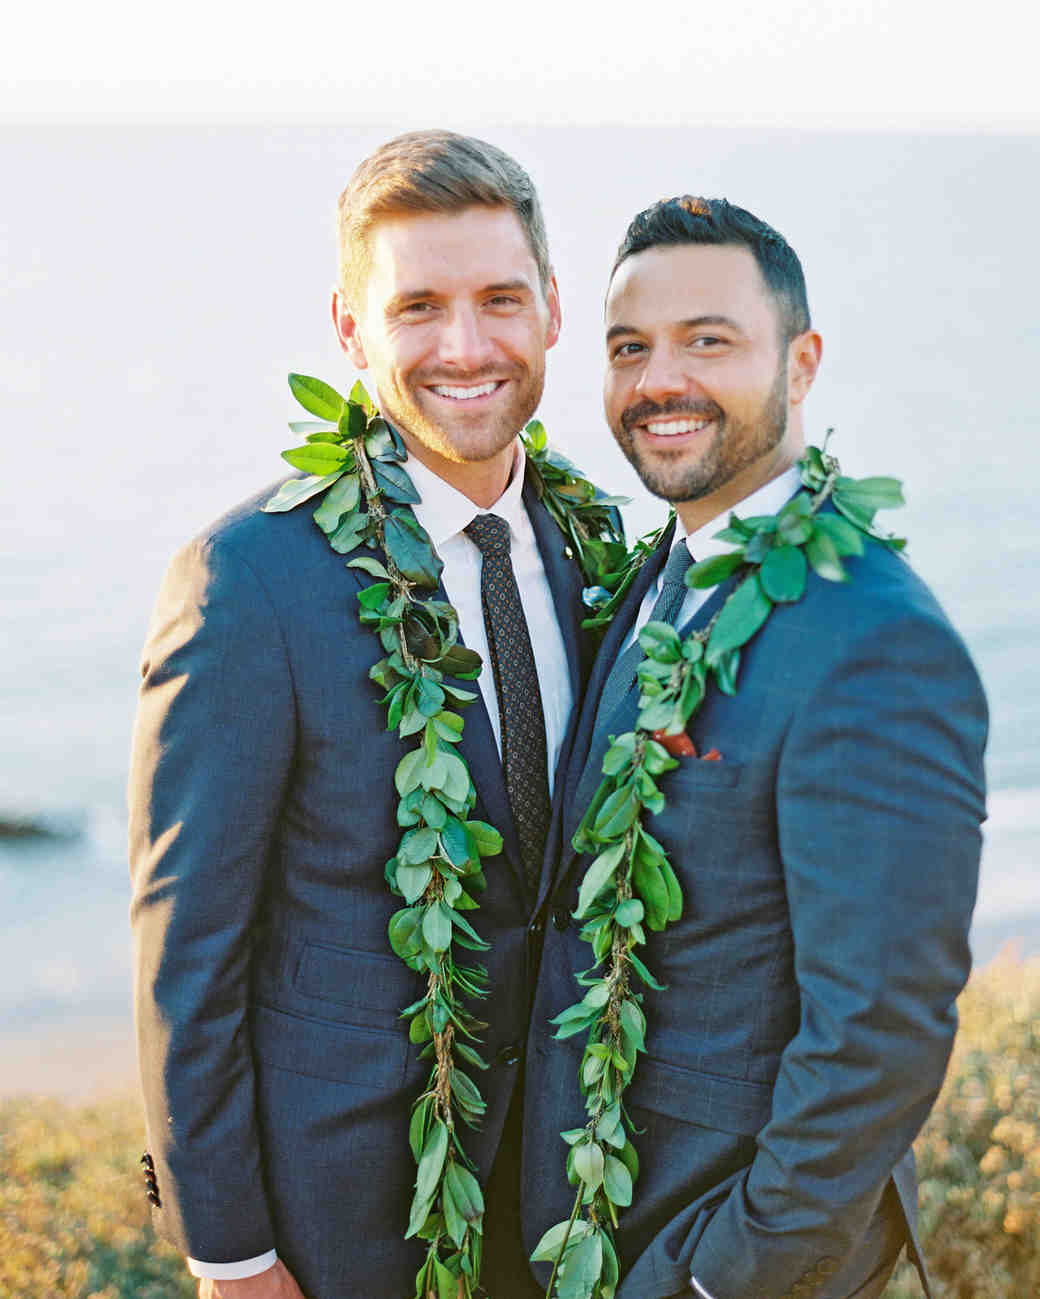 rob franco wedding grooms leis around necks